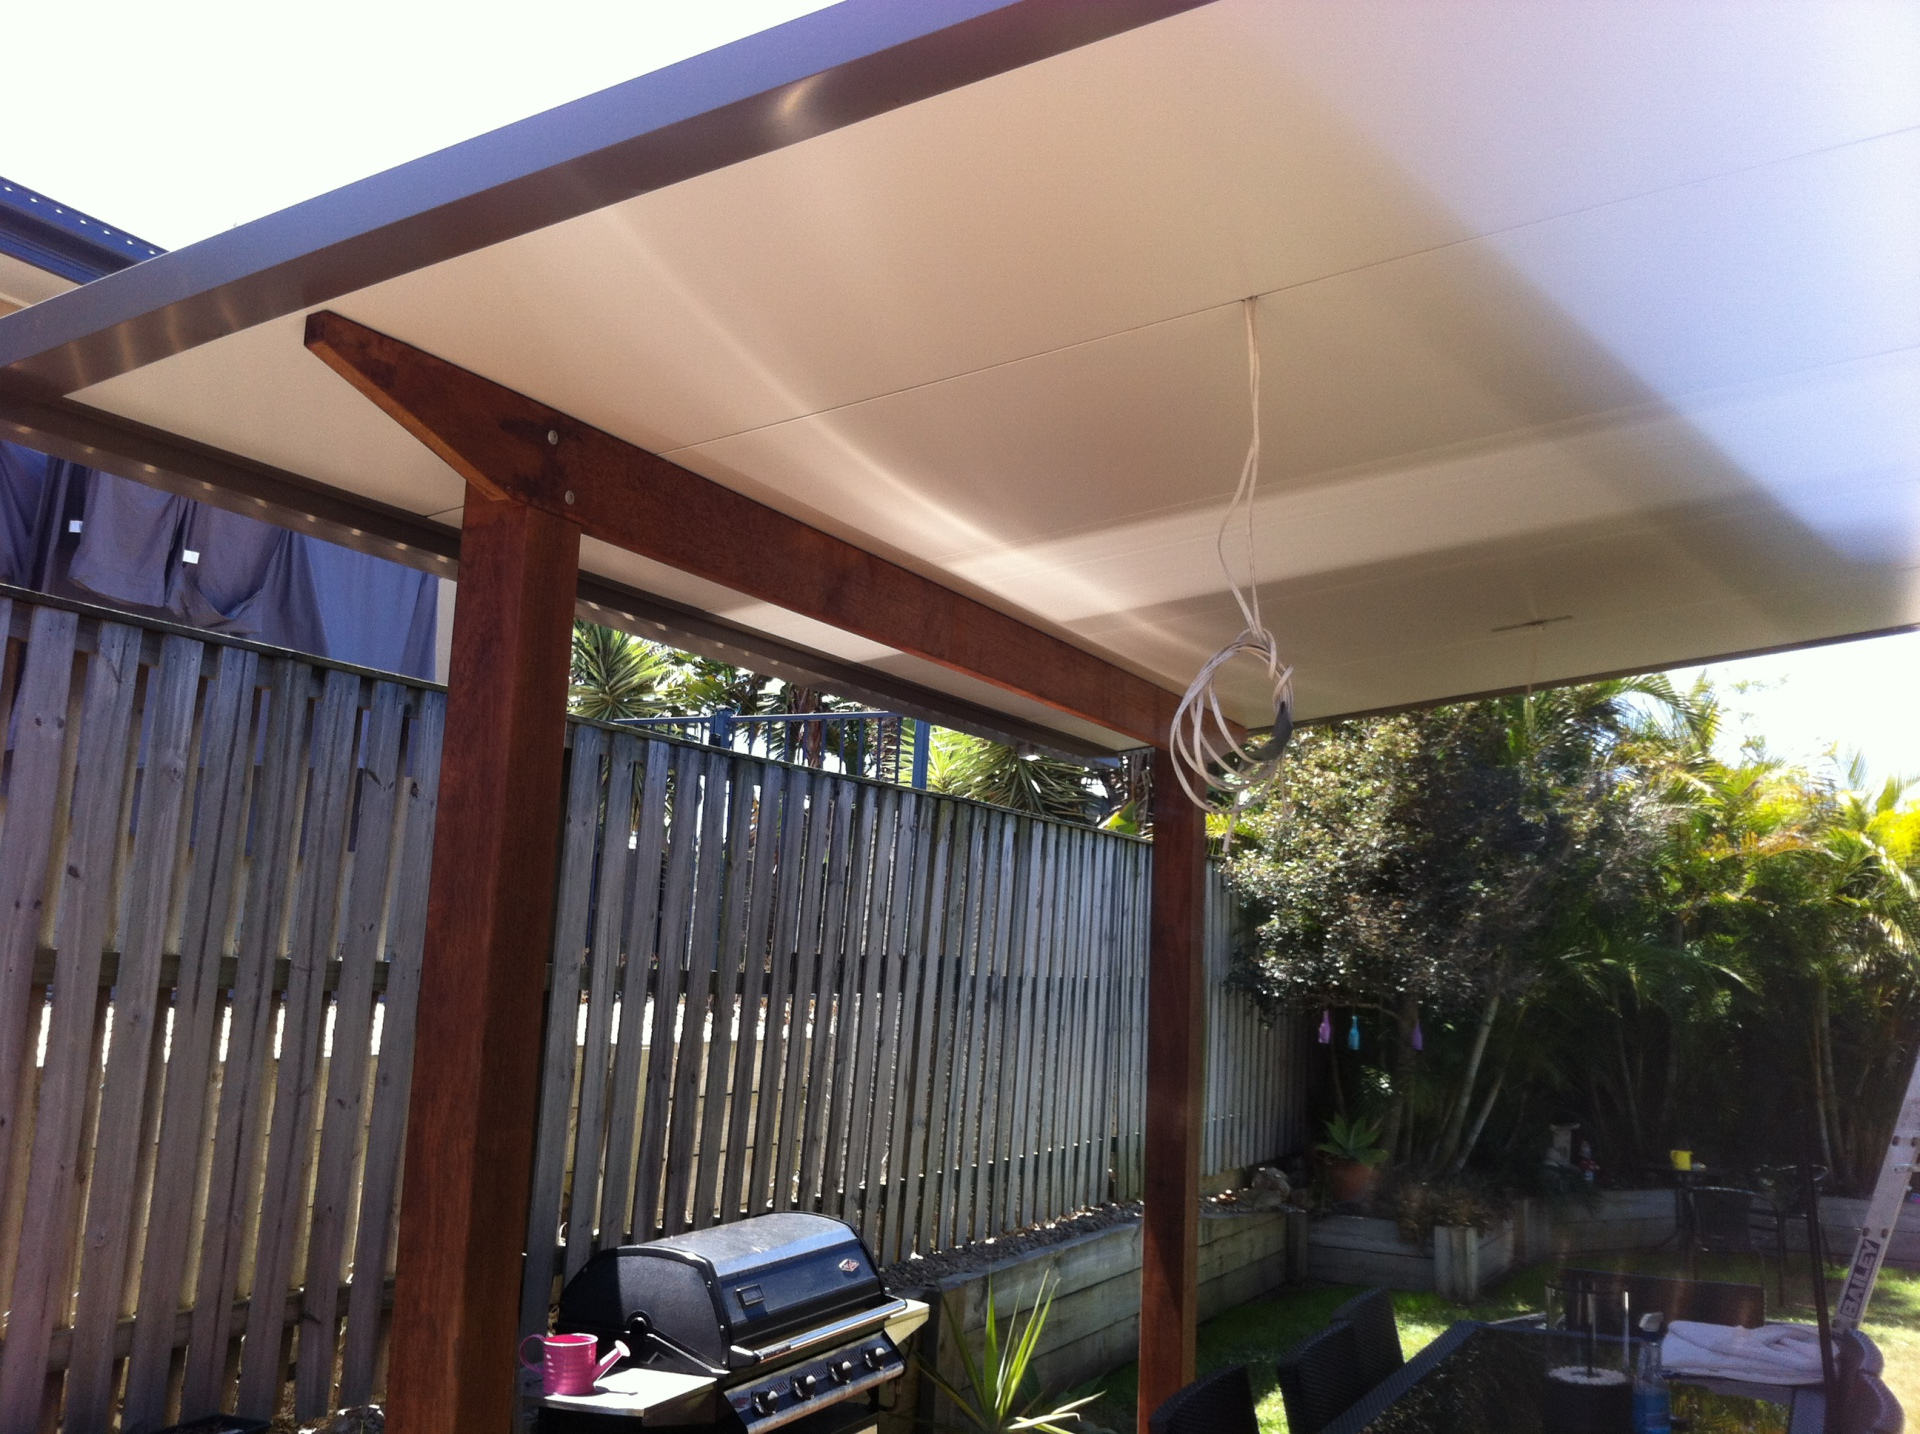 flyover insulated patio roof, pergolas, patios, brisbane